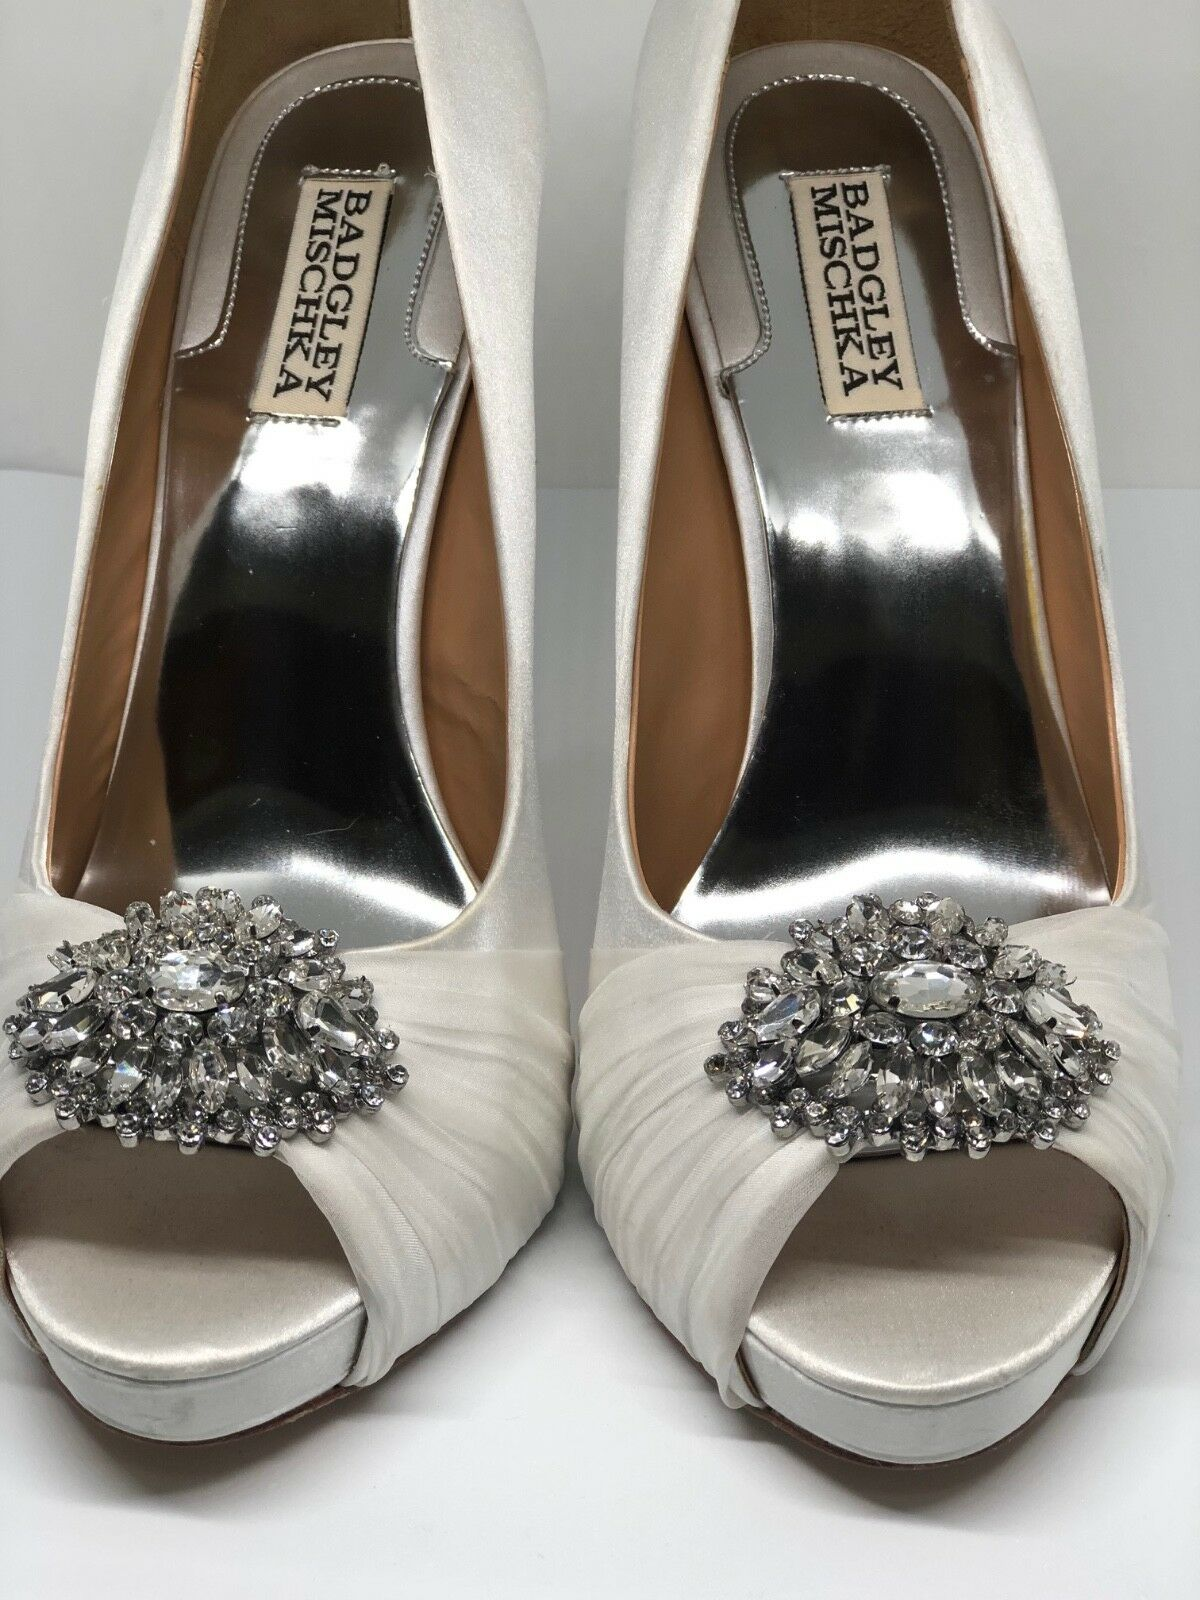 Badgley Mischka Jeannie Peep Größe Toe Pumps in Ivory Größe Peep 10 Bridal / Evening Heels 5484b1